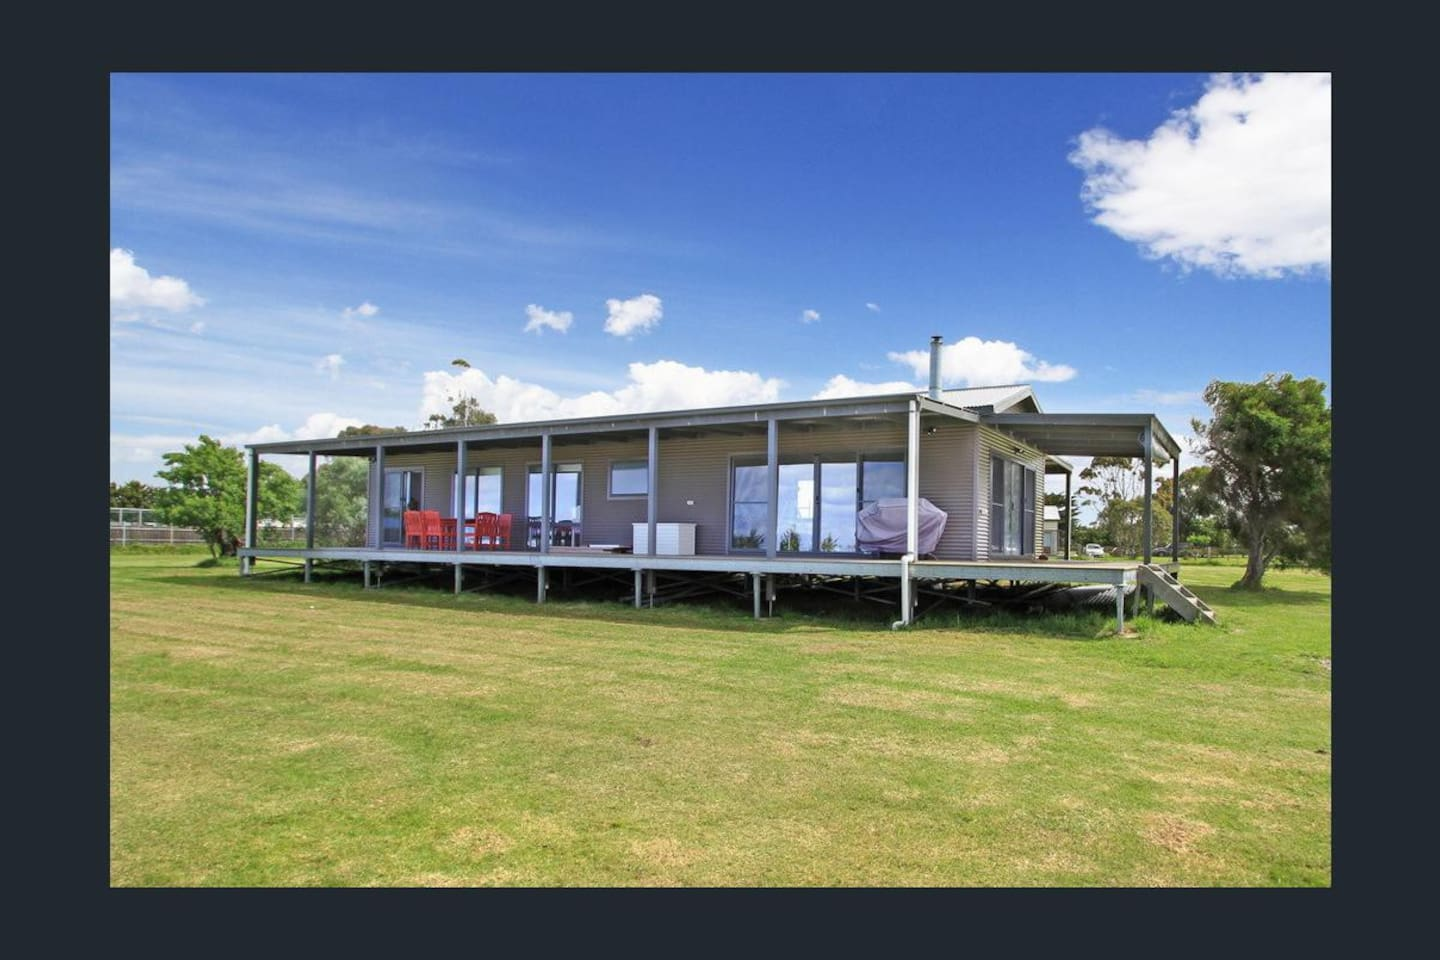 'The Spray Beach House' is a 3bdrm beach holiday house set on 2 acres on the outset of Seaspray town on the ridge of the hill overlooking 180 degree views of the Ninety Mile Beach, Gippsland.